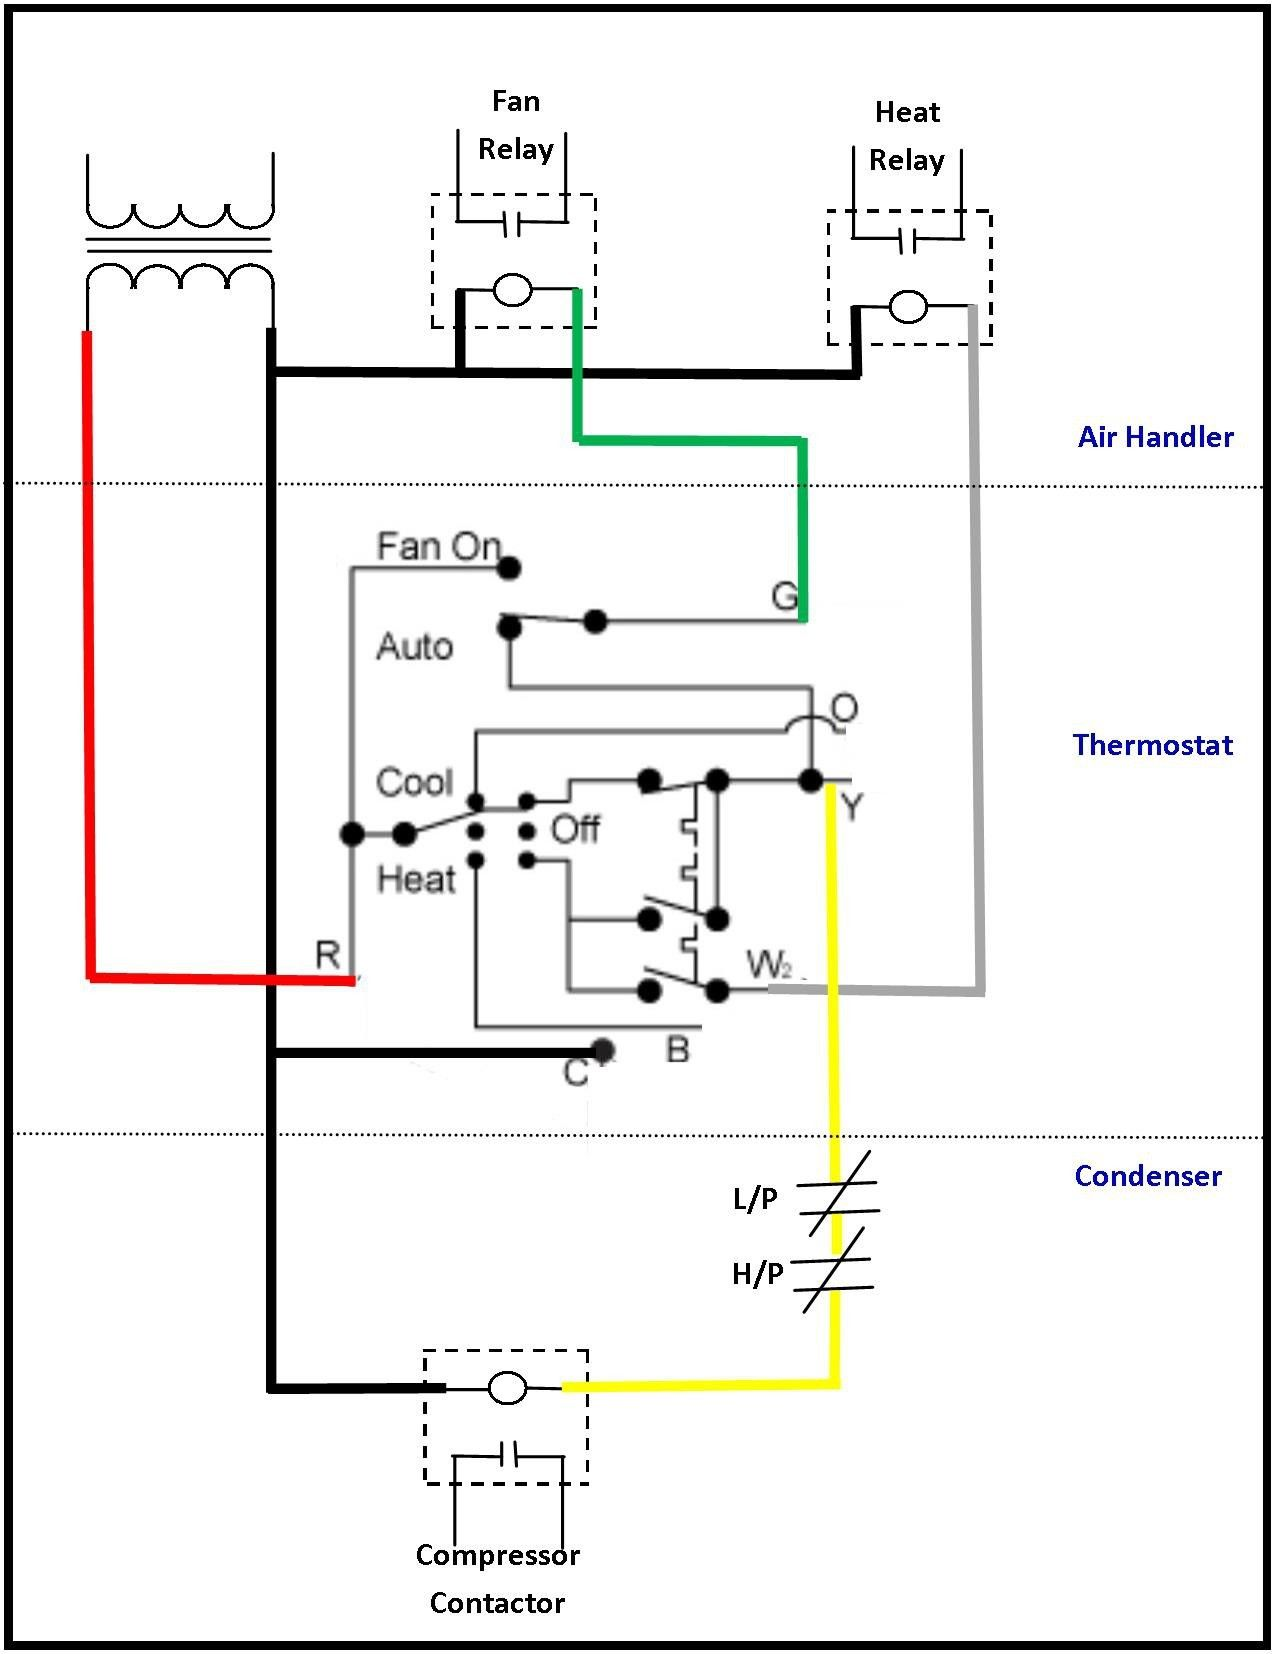 New Bryant Gas Furnace Wiring Diagram #diagram #diagramsample  #diagramtemplate #wiringdiag… | Electrical circuit diagram, Thermostat  wiring, Basic electrical wiringPinterest